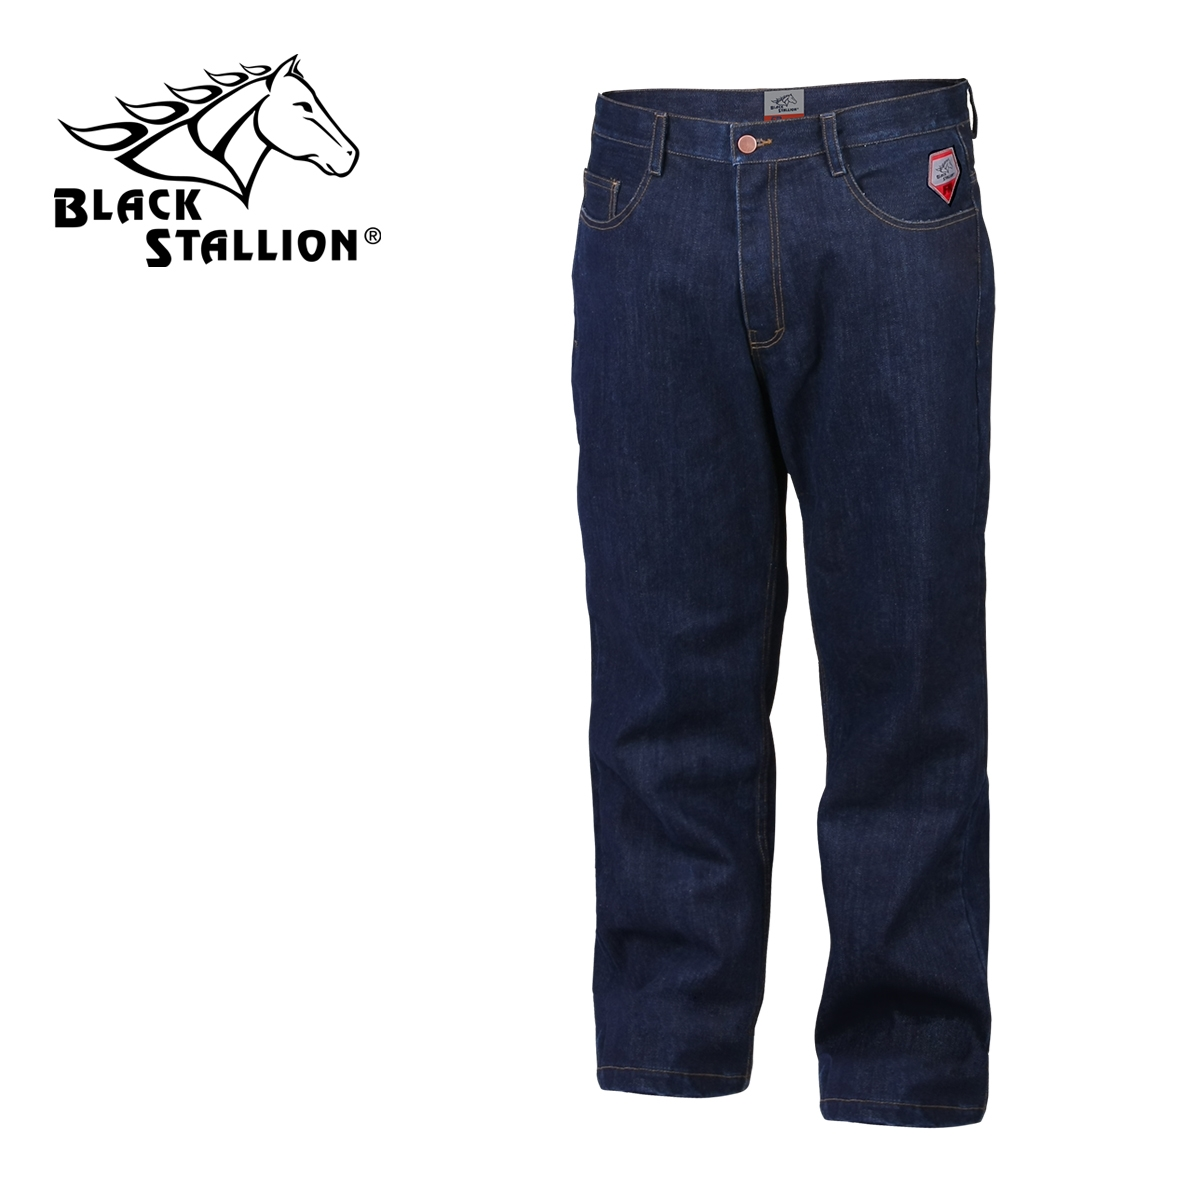 "TruGuard 300 FR Denim Jeans 34"" Inseam"